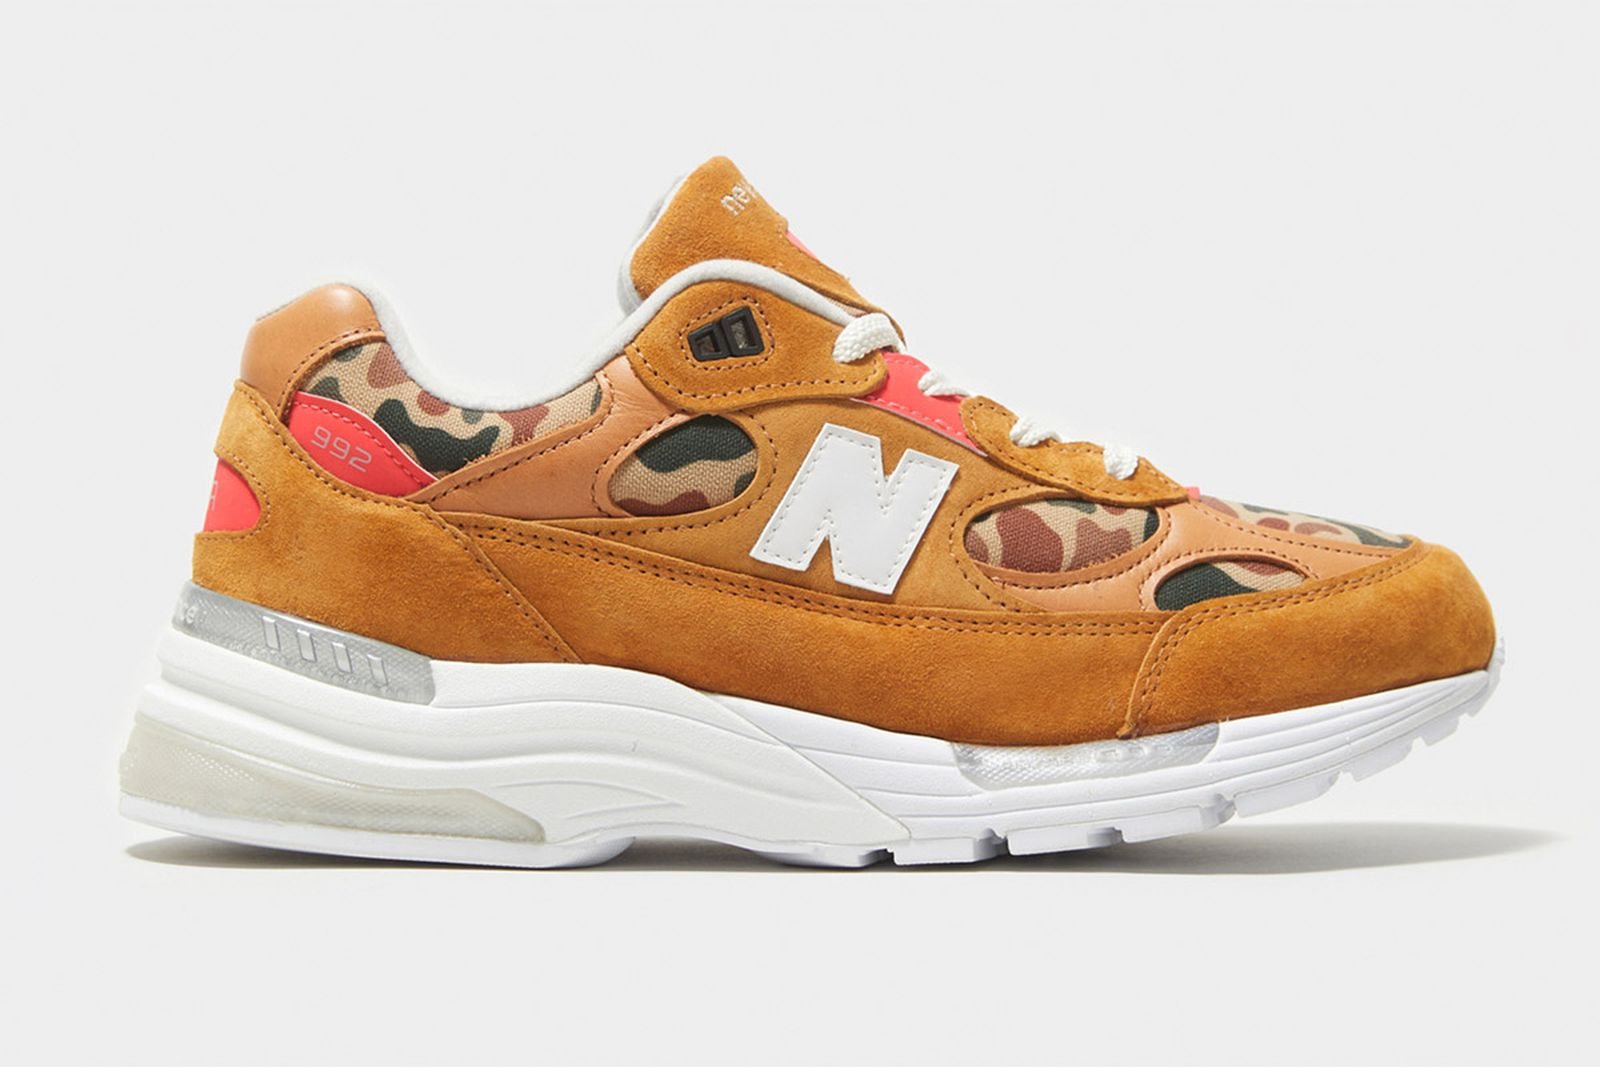 todd-snyder-ny-new-balance-992-release-date-price-01